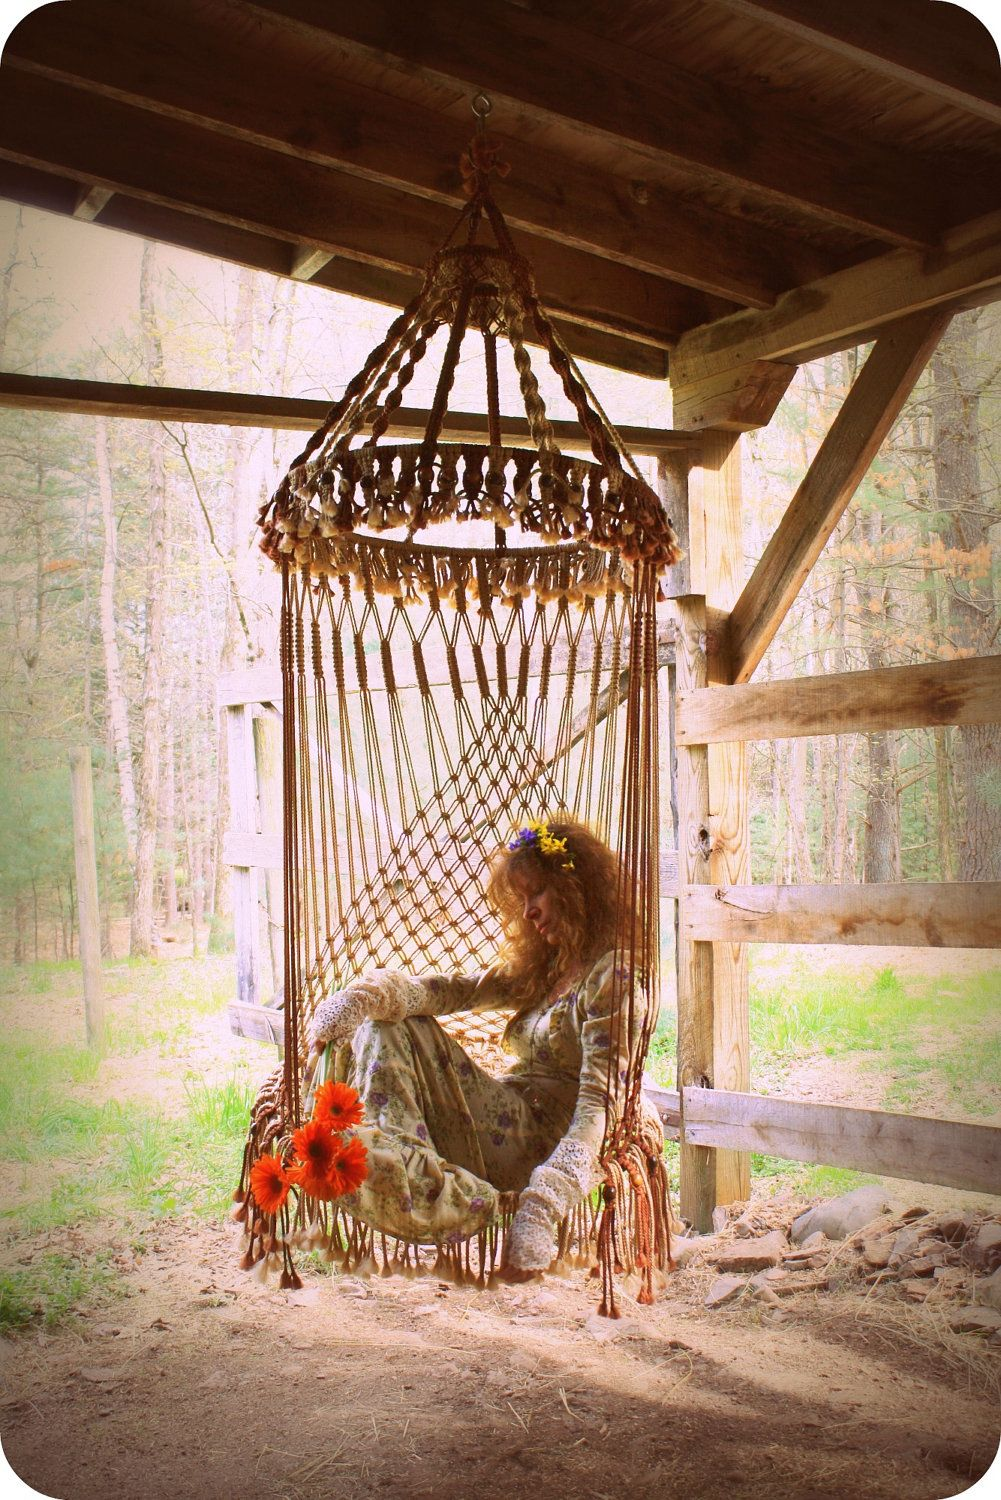 Handmade OOAK Macrame Vintage Retro Style Hanging Woodstock Hippie Elf  Fairy Swing Chair As Seen On HGTV Junk Gypsy Series. $750.00, Via Etsy.